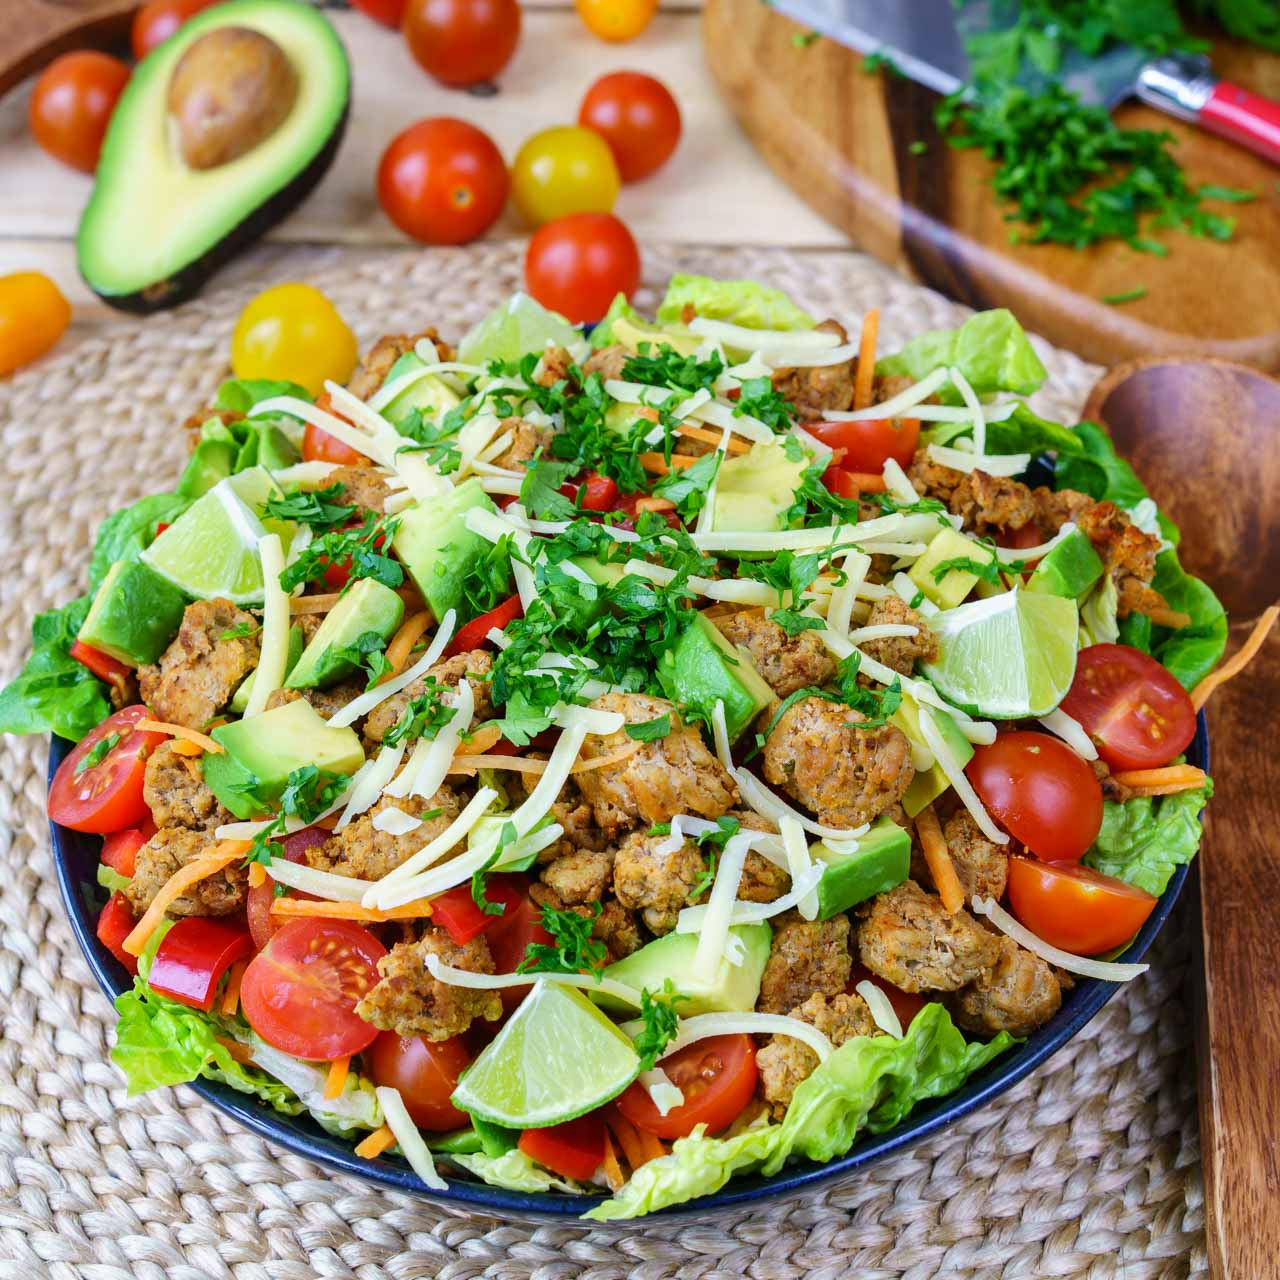 CleanFoodCrush Turkey Taco Salad